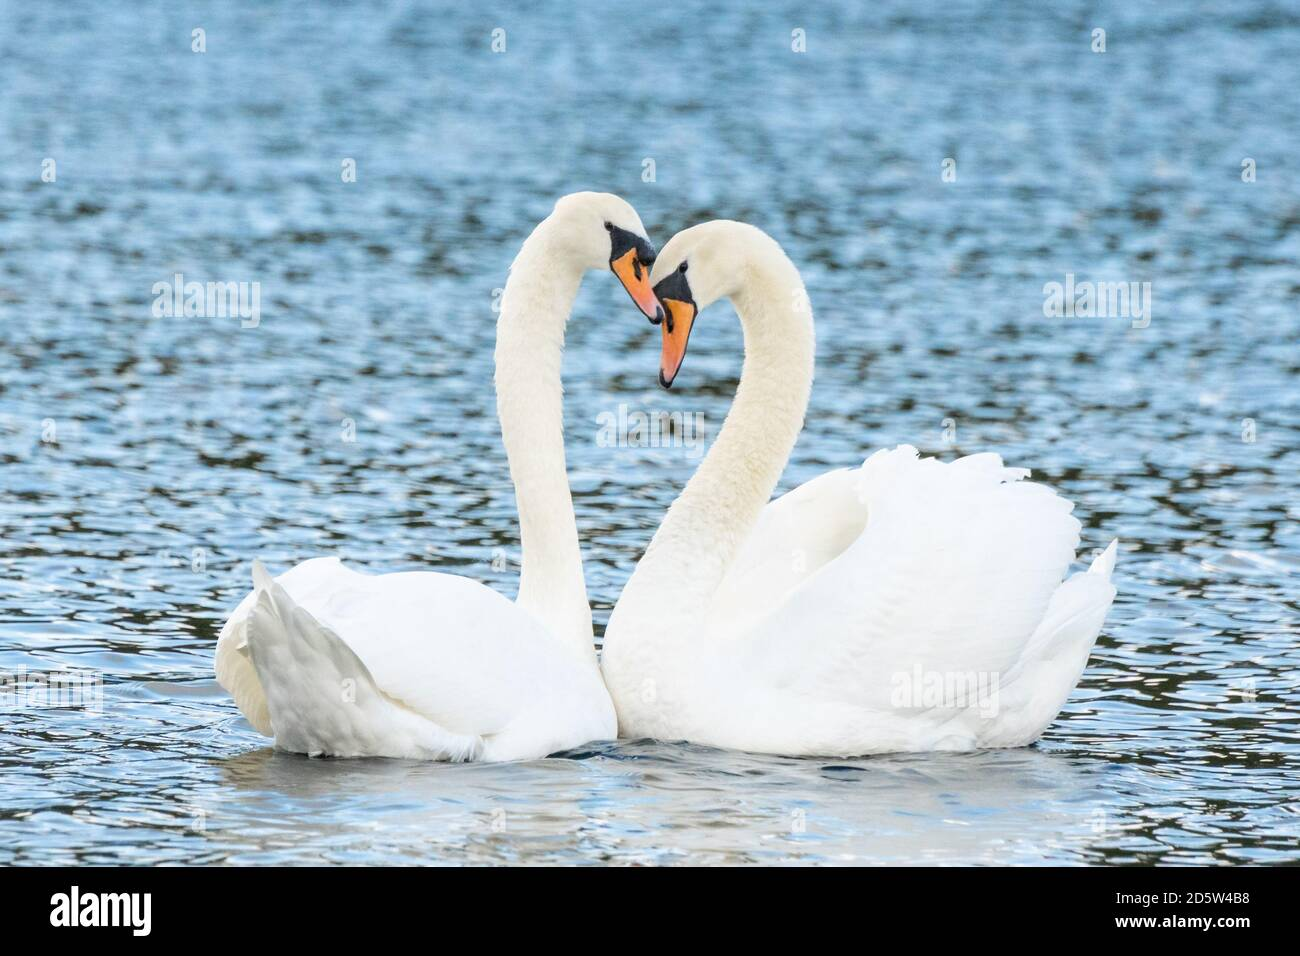 Mute swan pair bonding on a lake with their necks forming the heart shape. Love, affection, bonding, mate for life, trust, mate, beauty, birds, animal Stock Photo